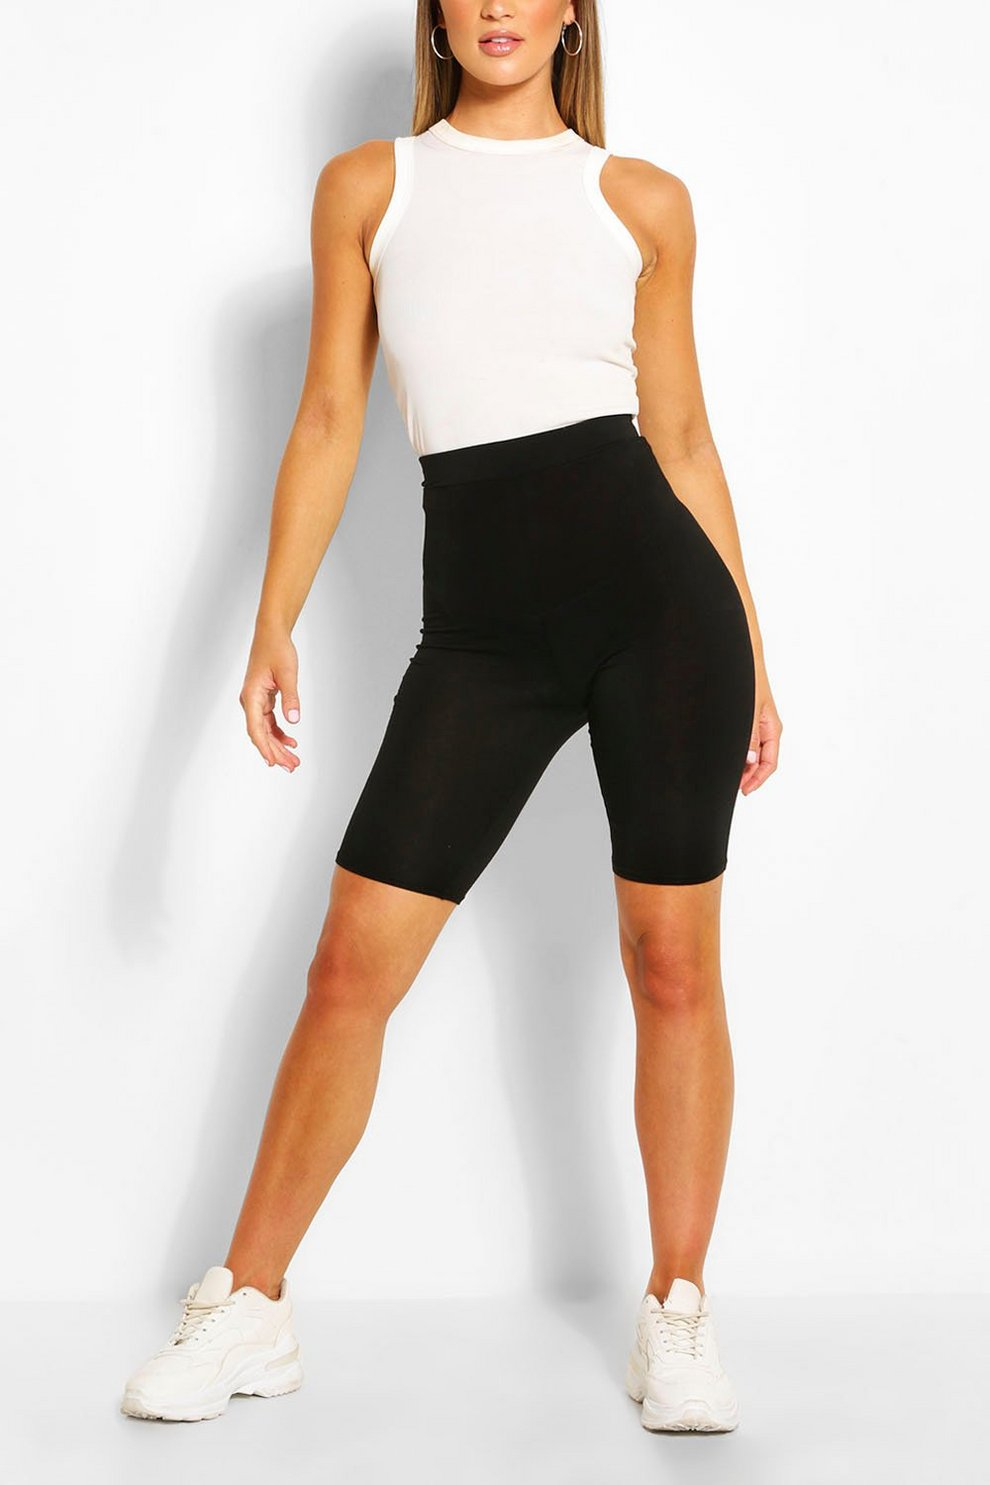 343daaa34540 Basic Solid Black Cycling Shorts | Boohoo